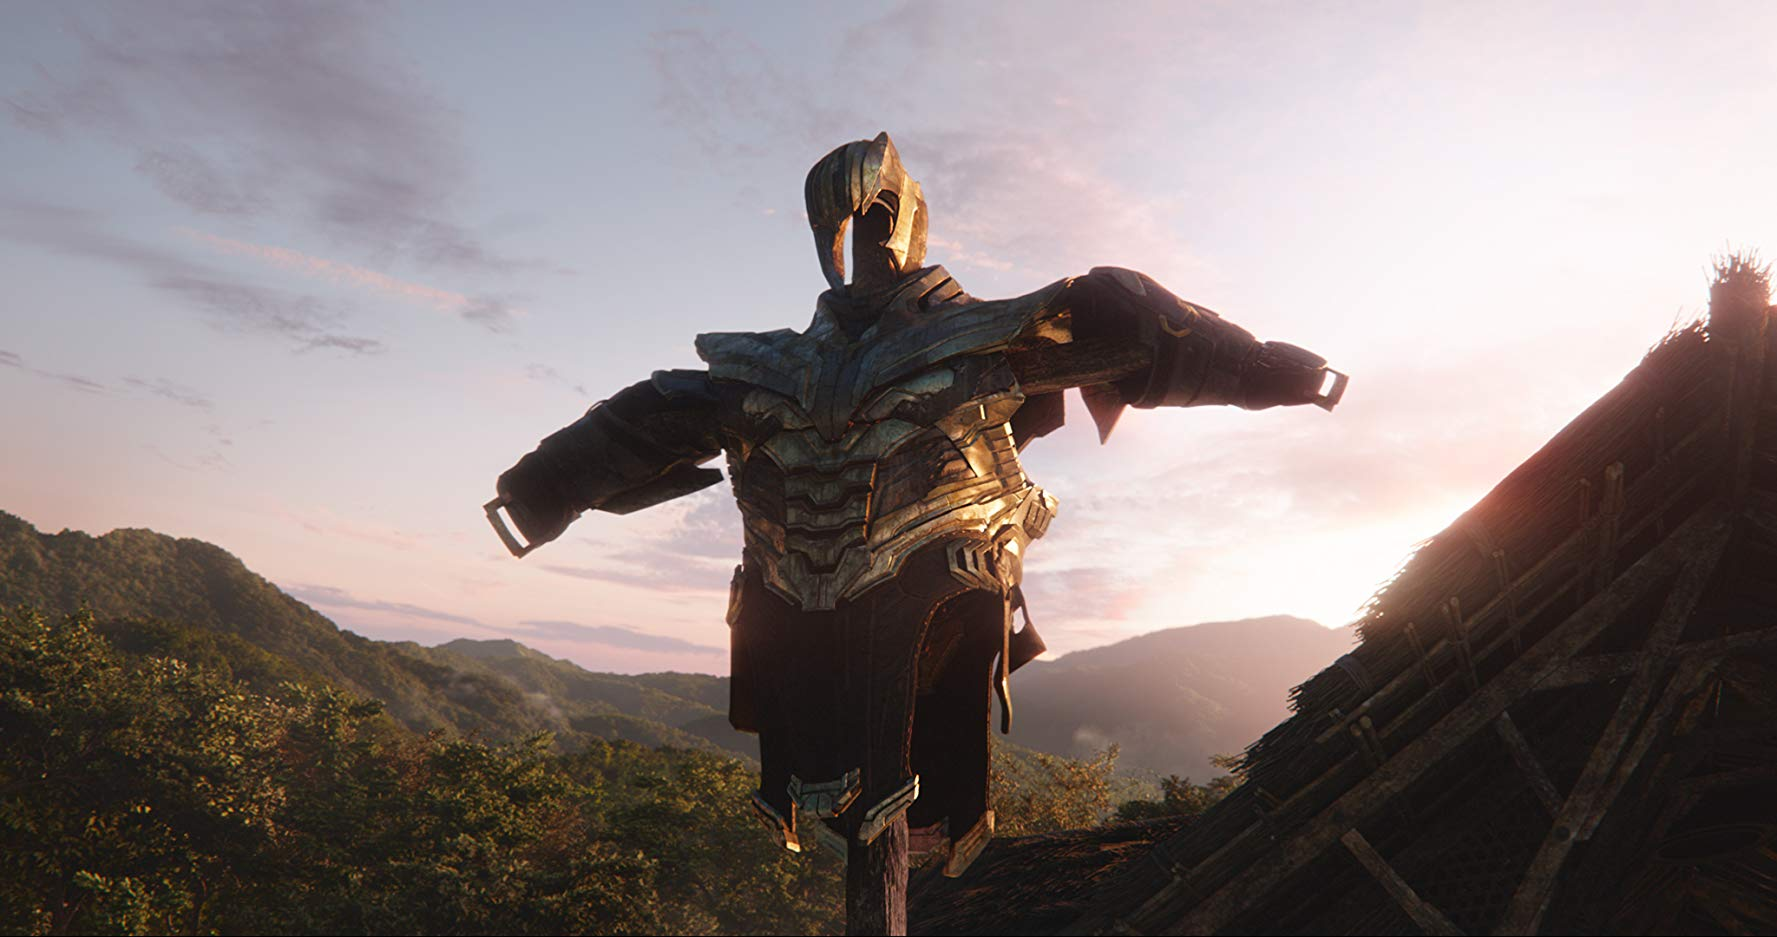 Movie Review: Avengers: Endgame (Spoiler-free)